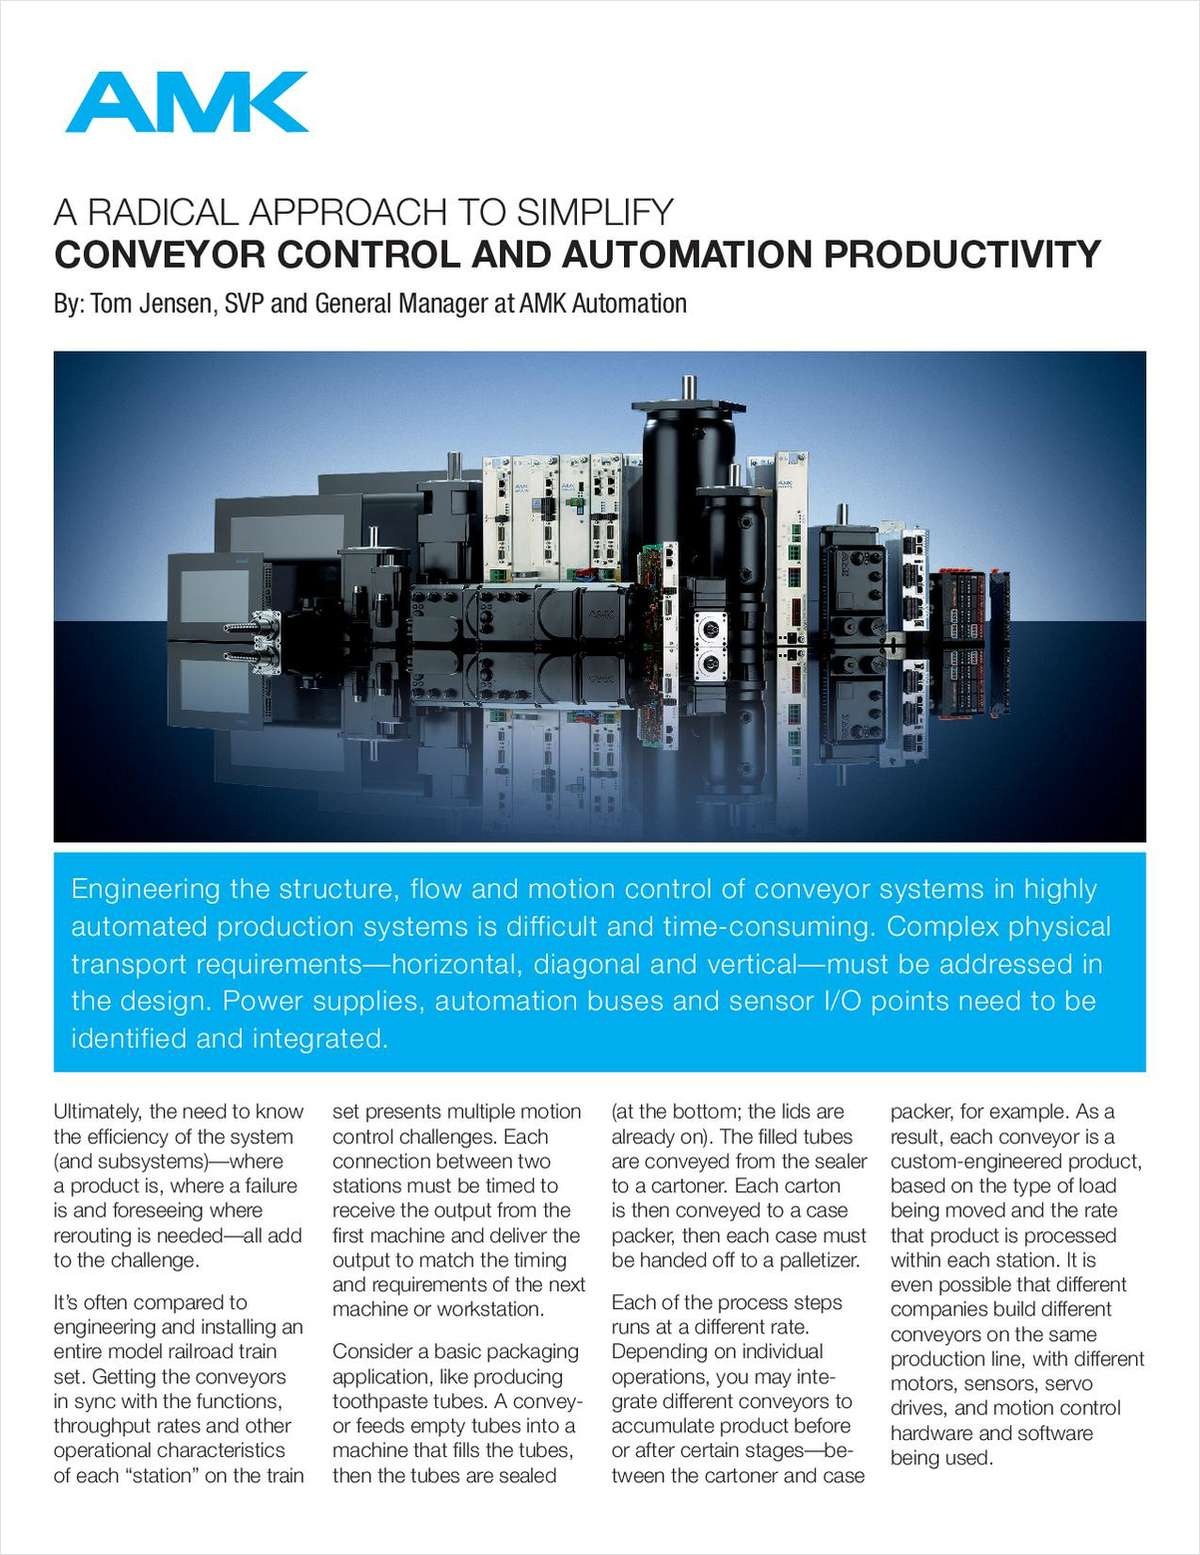 A Radical Approach to Simplify Conveyor Control and Automation Productivity